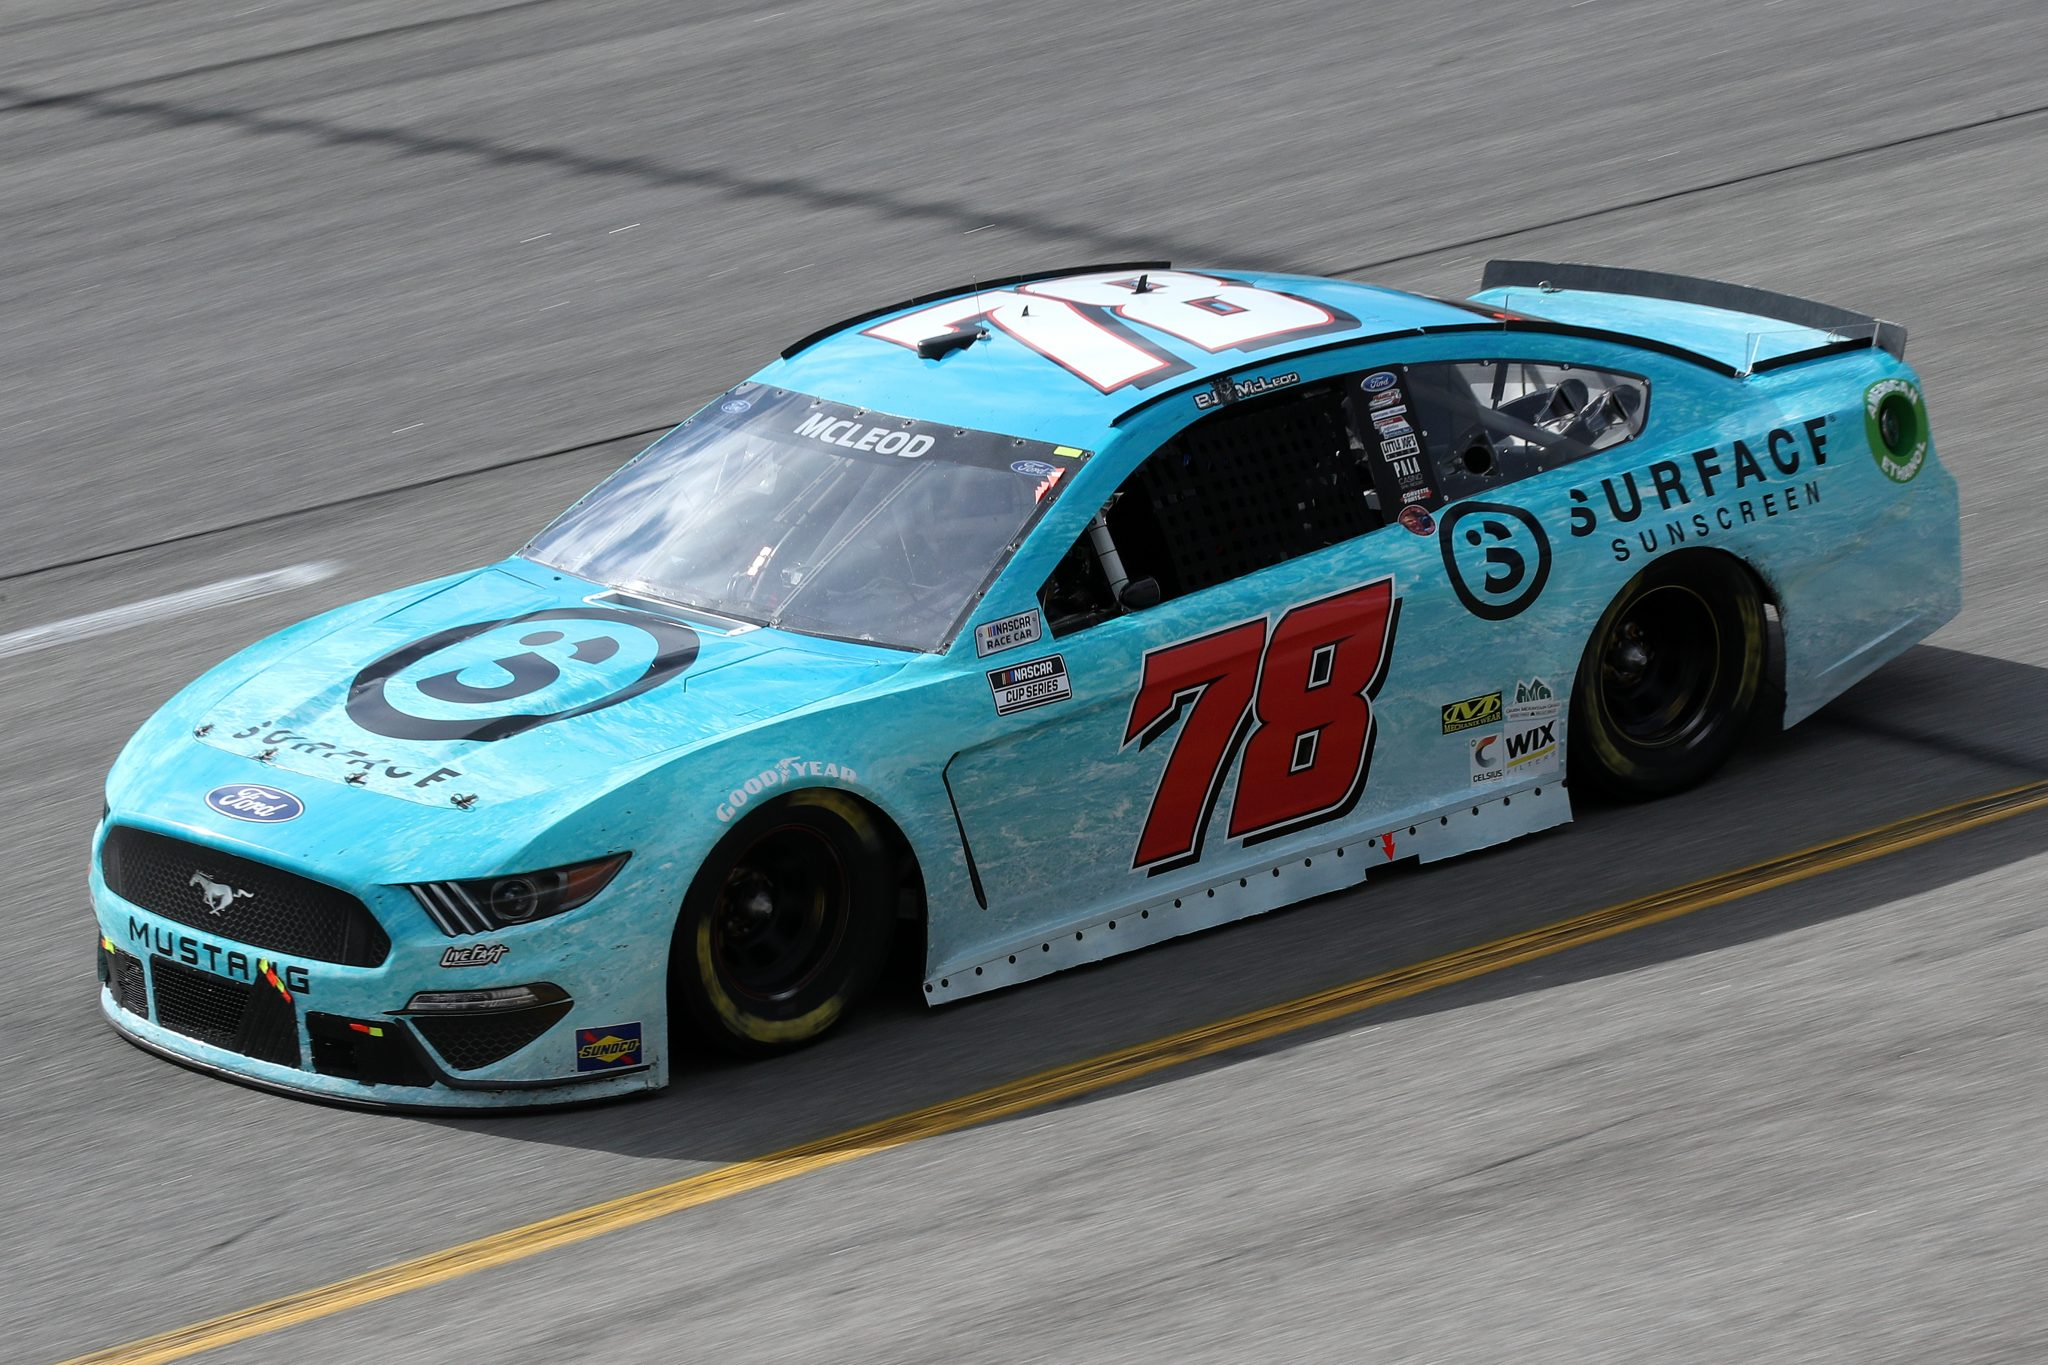 RICHMOND, VIRGINIA - APRIL 18: BJ McLeod, driver of the #78 Surface Sunscreen Ford, drives during the NASCAR Cup Series Toyota Owners 400 at Richmond Raceway on April 18, 2021 in Richmond, Virginia. (Photo by Sean Gardner/Getty Images) | Getty Images